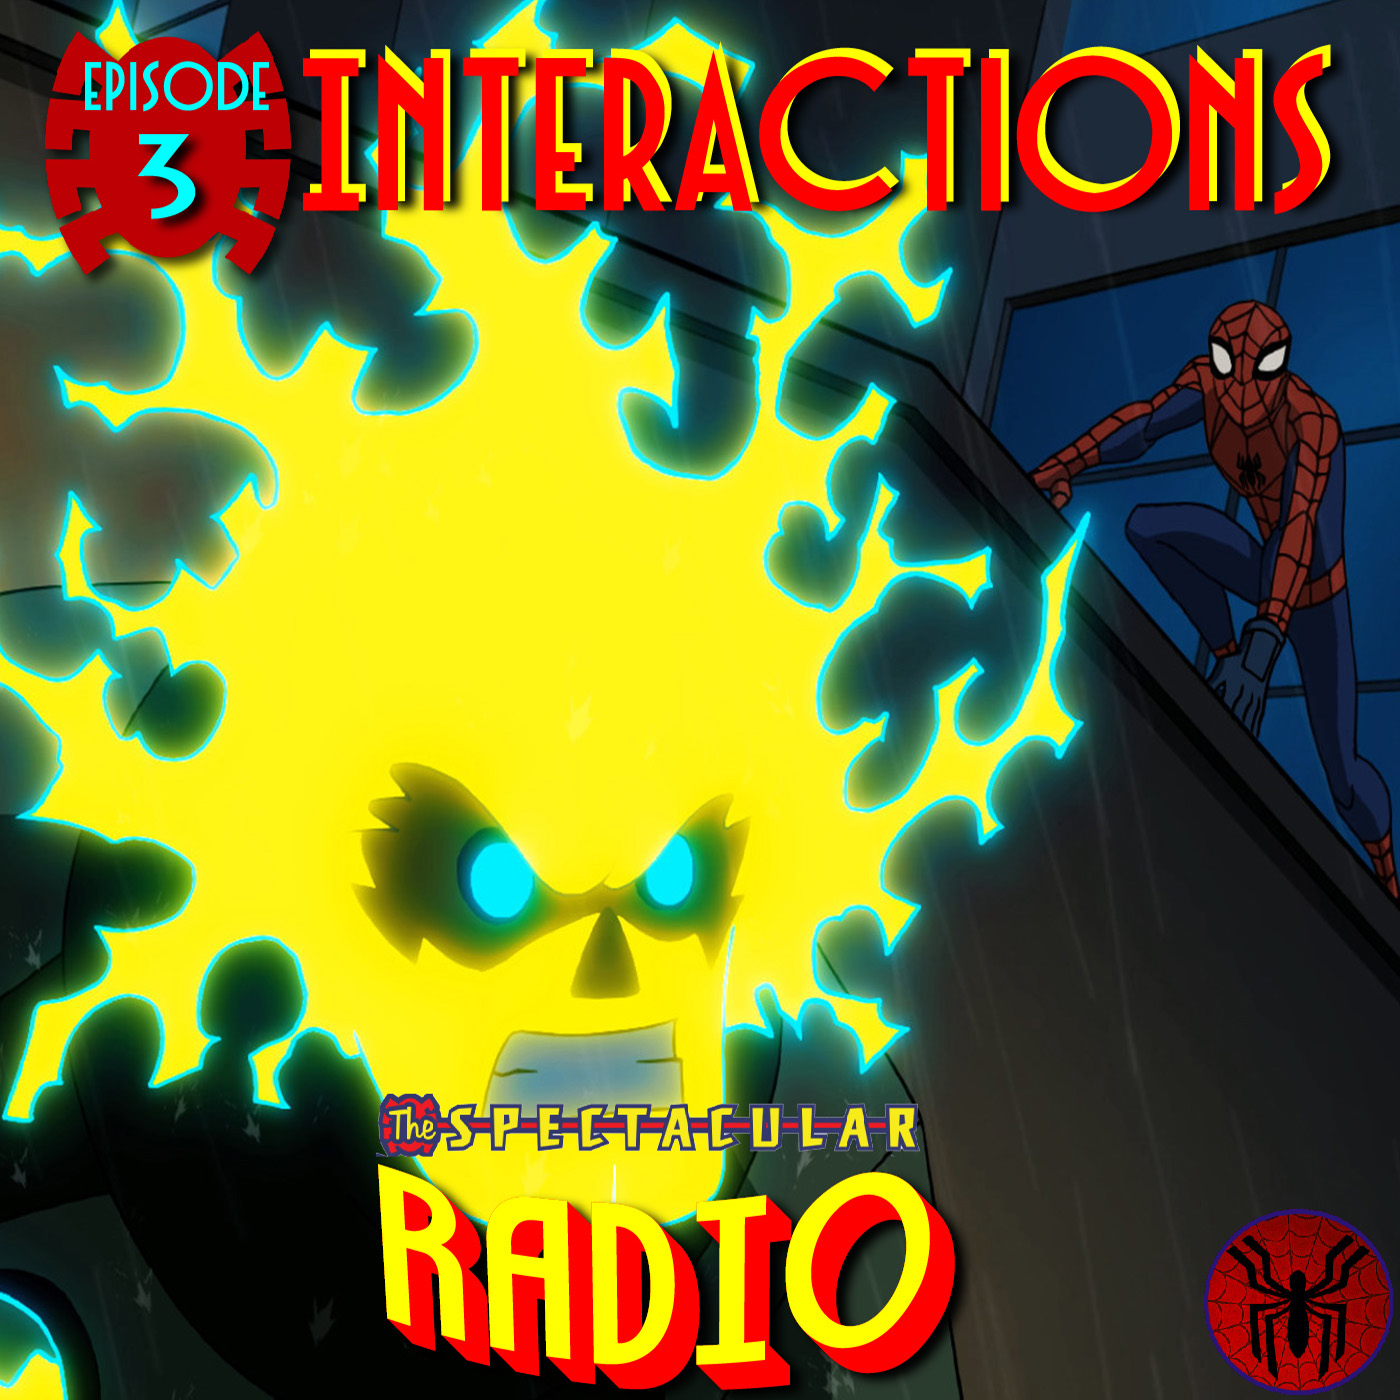 Spectacular Radio Episode 3: Interactions w/Greg Weisman and Jennifer L. Anderson